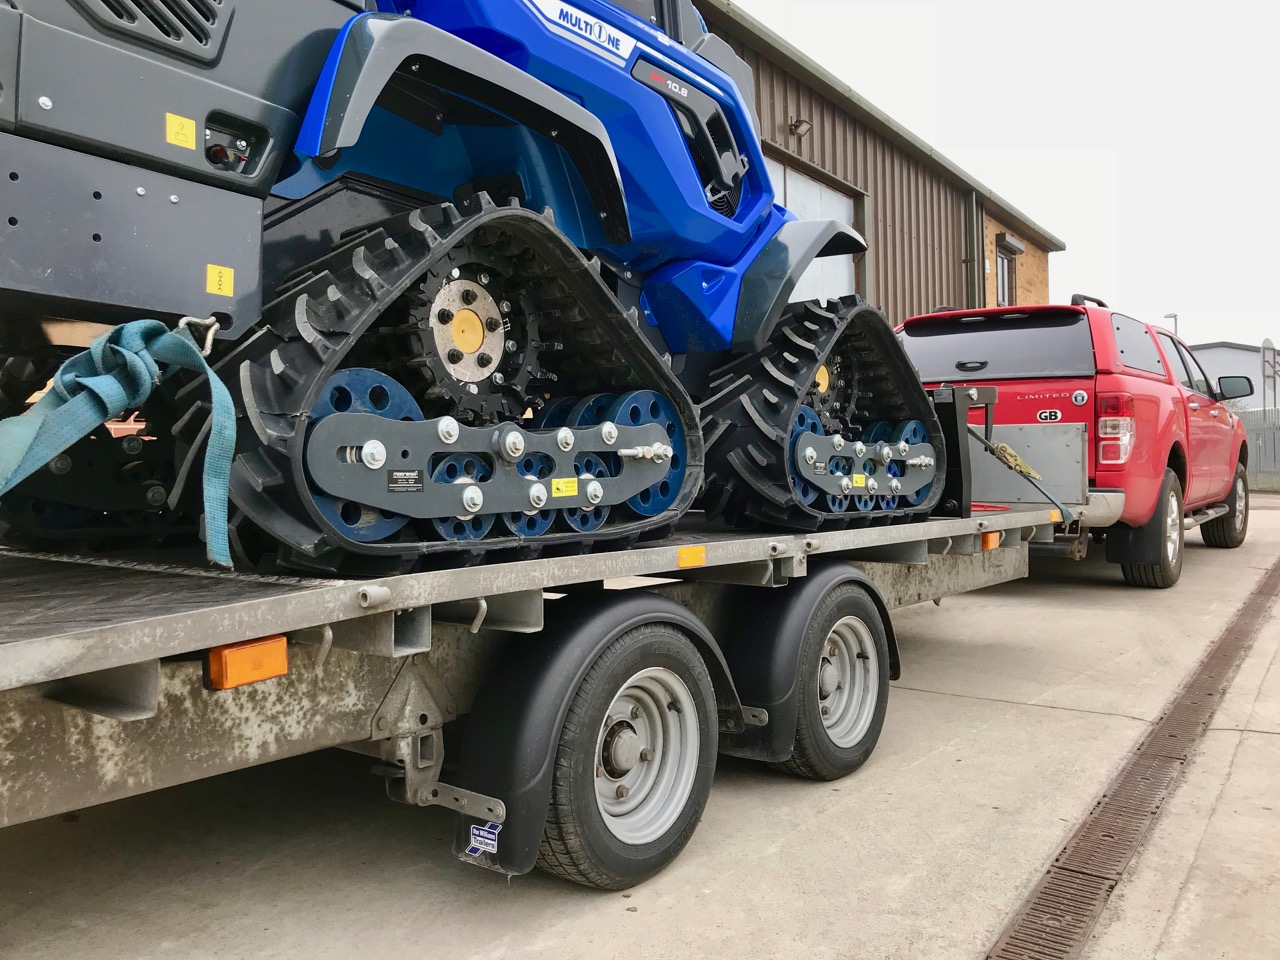 Compact Tracked Loader on trailer transport